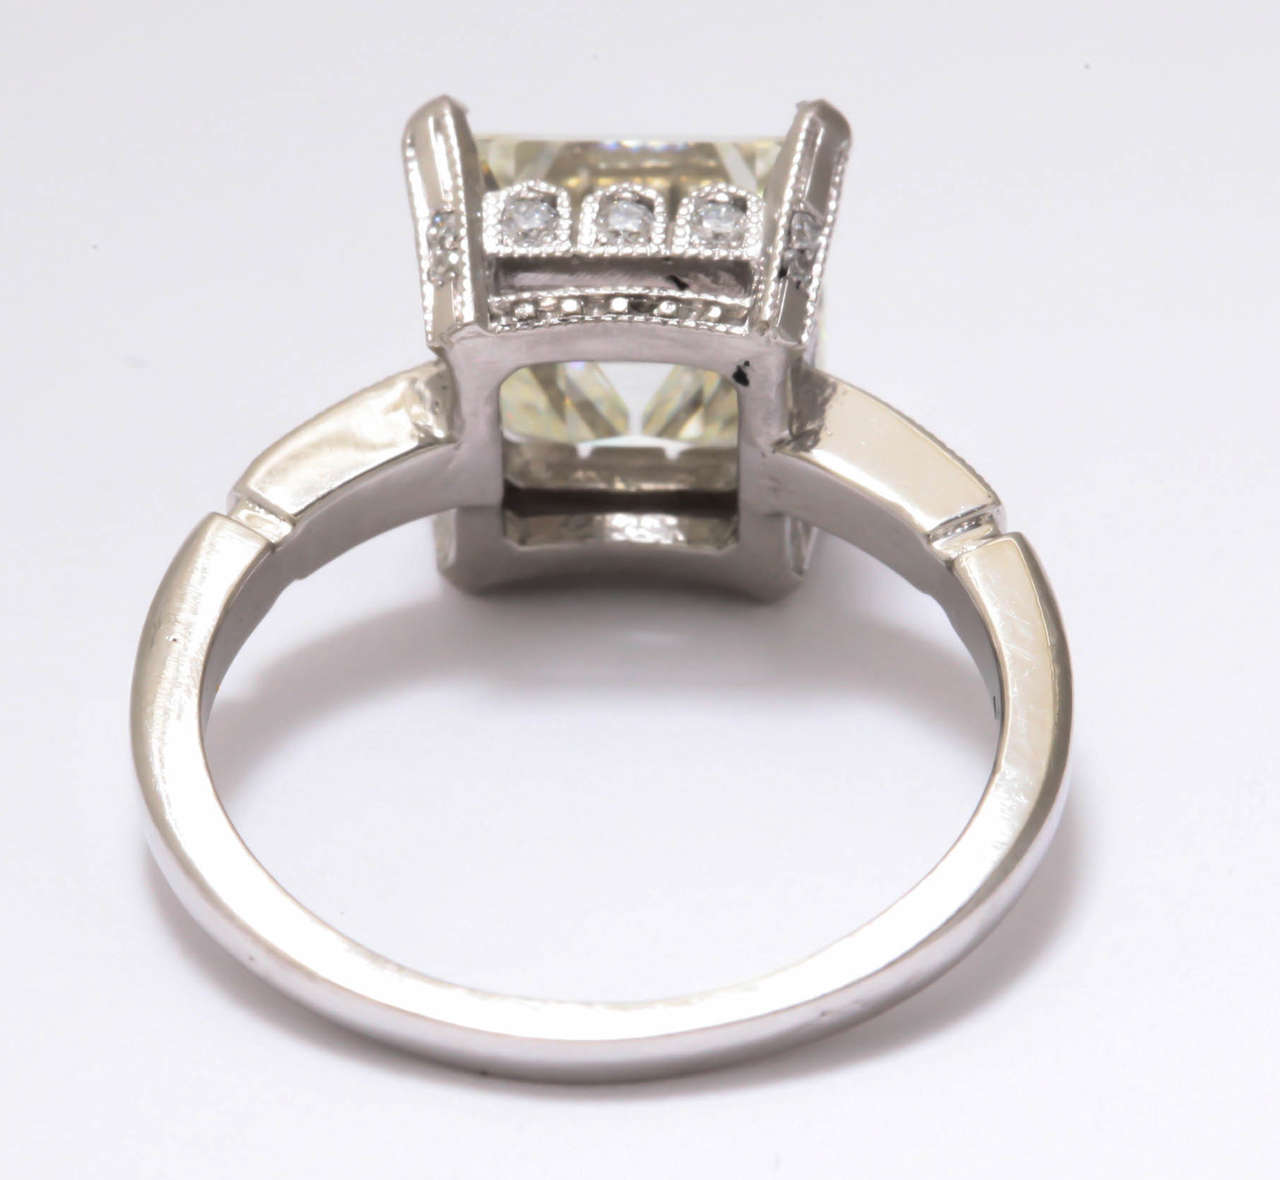 Vintage Asscher or Emerald Cut 3 5 Carat Diamond Platinum Engagement Ring For